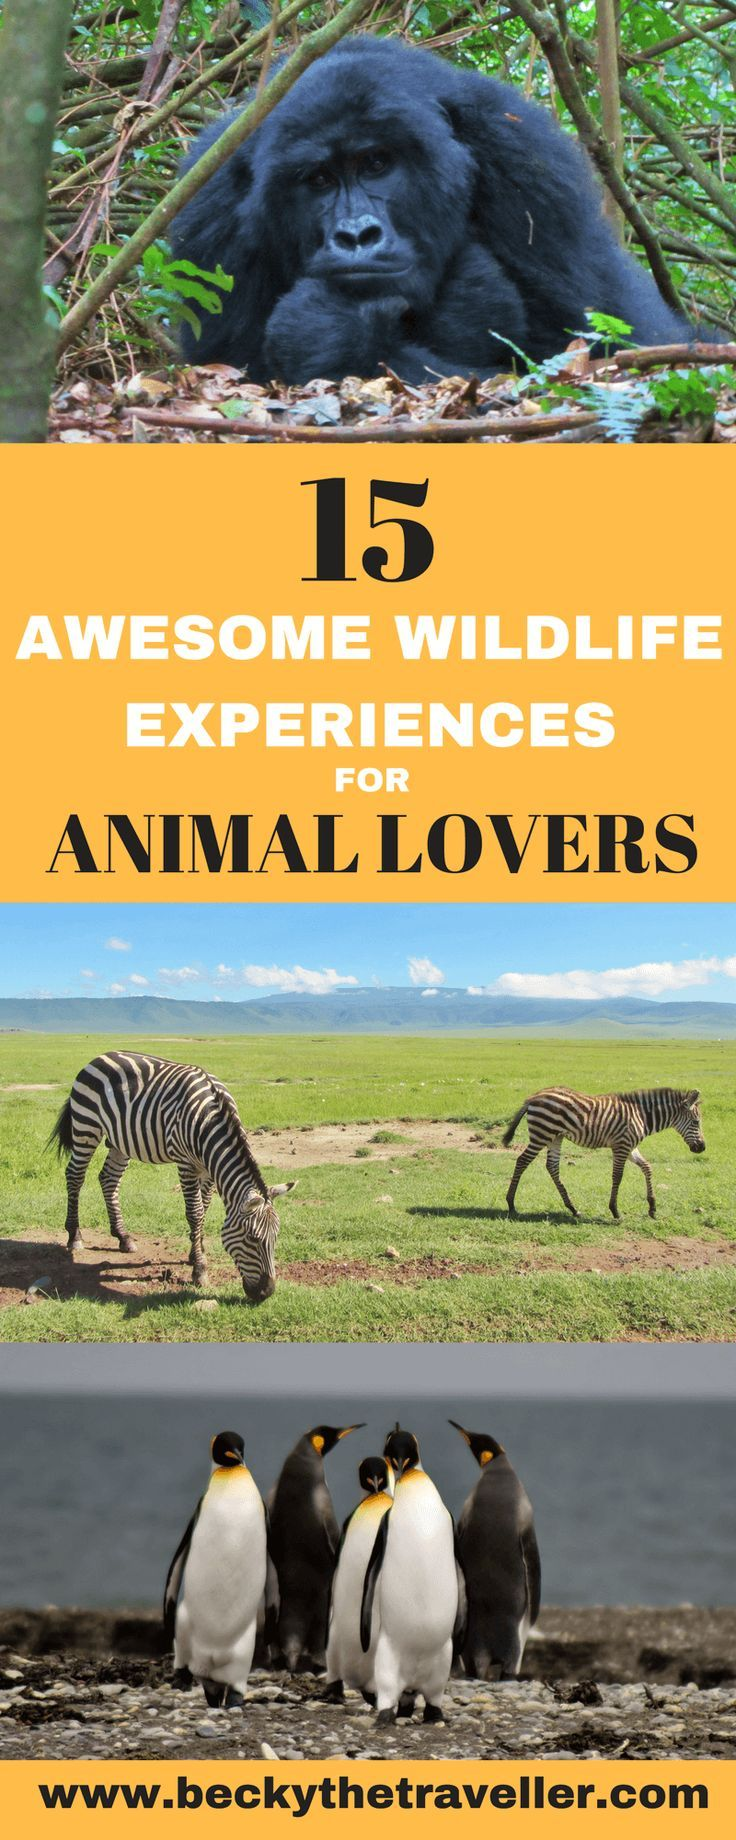 15 awesome wildlife experiences from around the world. Inspiration for animal lovers from African safaris to releasing turtles in Mexico. | Animal experiences | Wild animals | African safaris | Releasing turtles | Gorilla trekking |